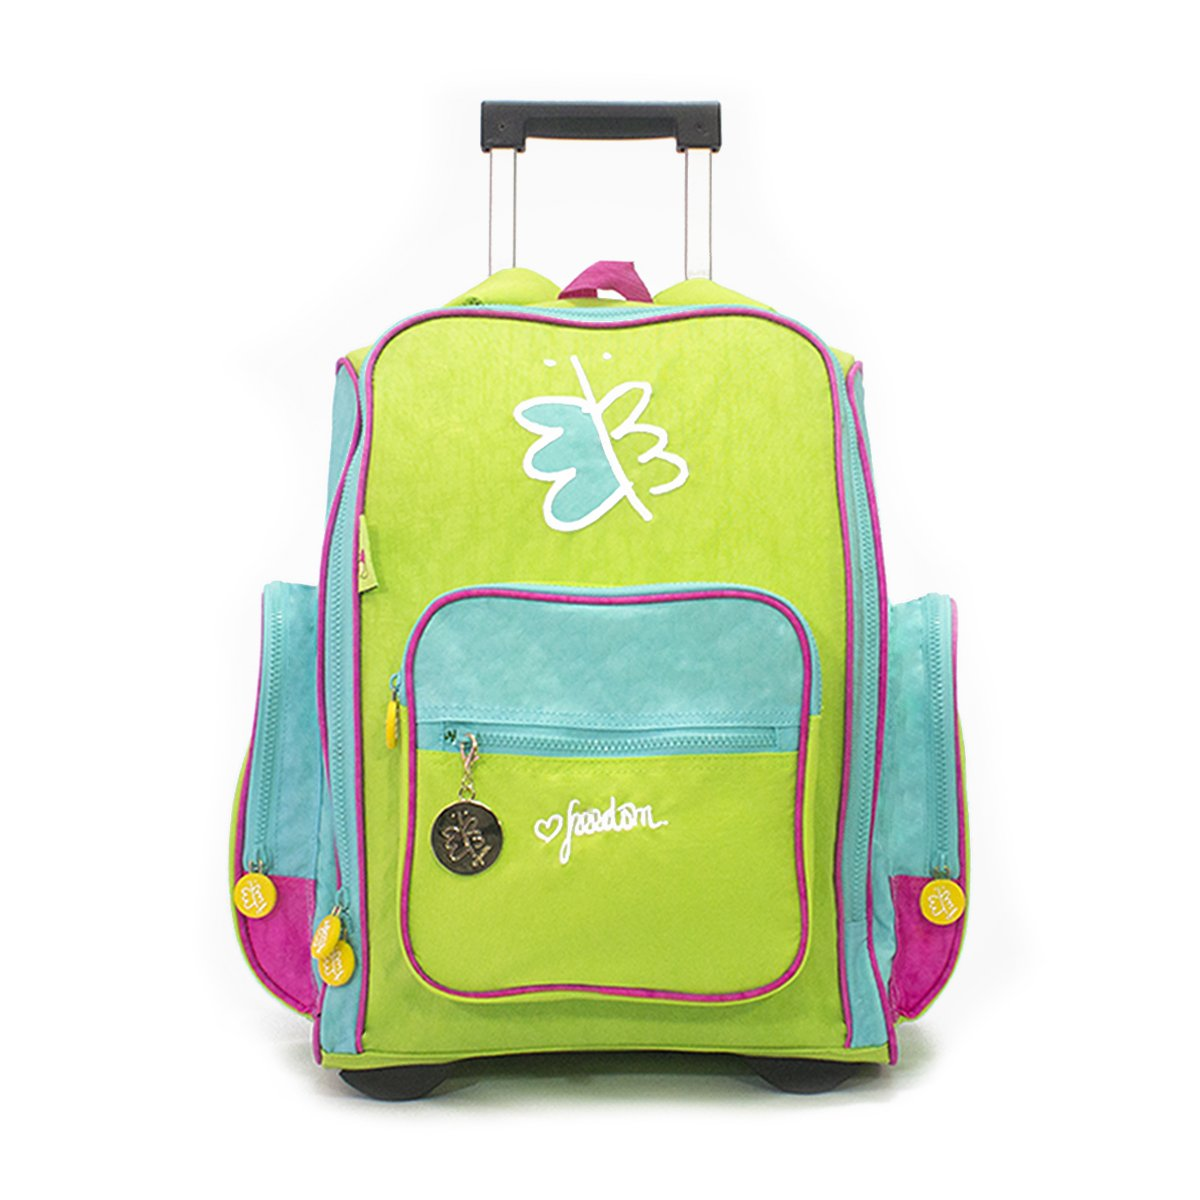 Biglove Rolling Kids Backpack Freedom, Multi-Colored, One Size